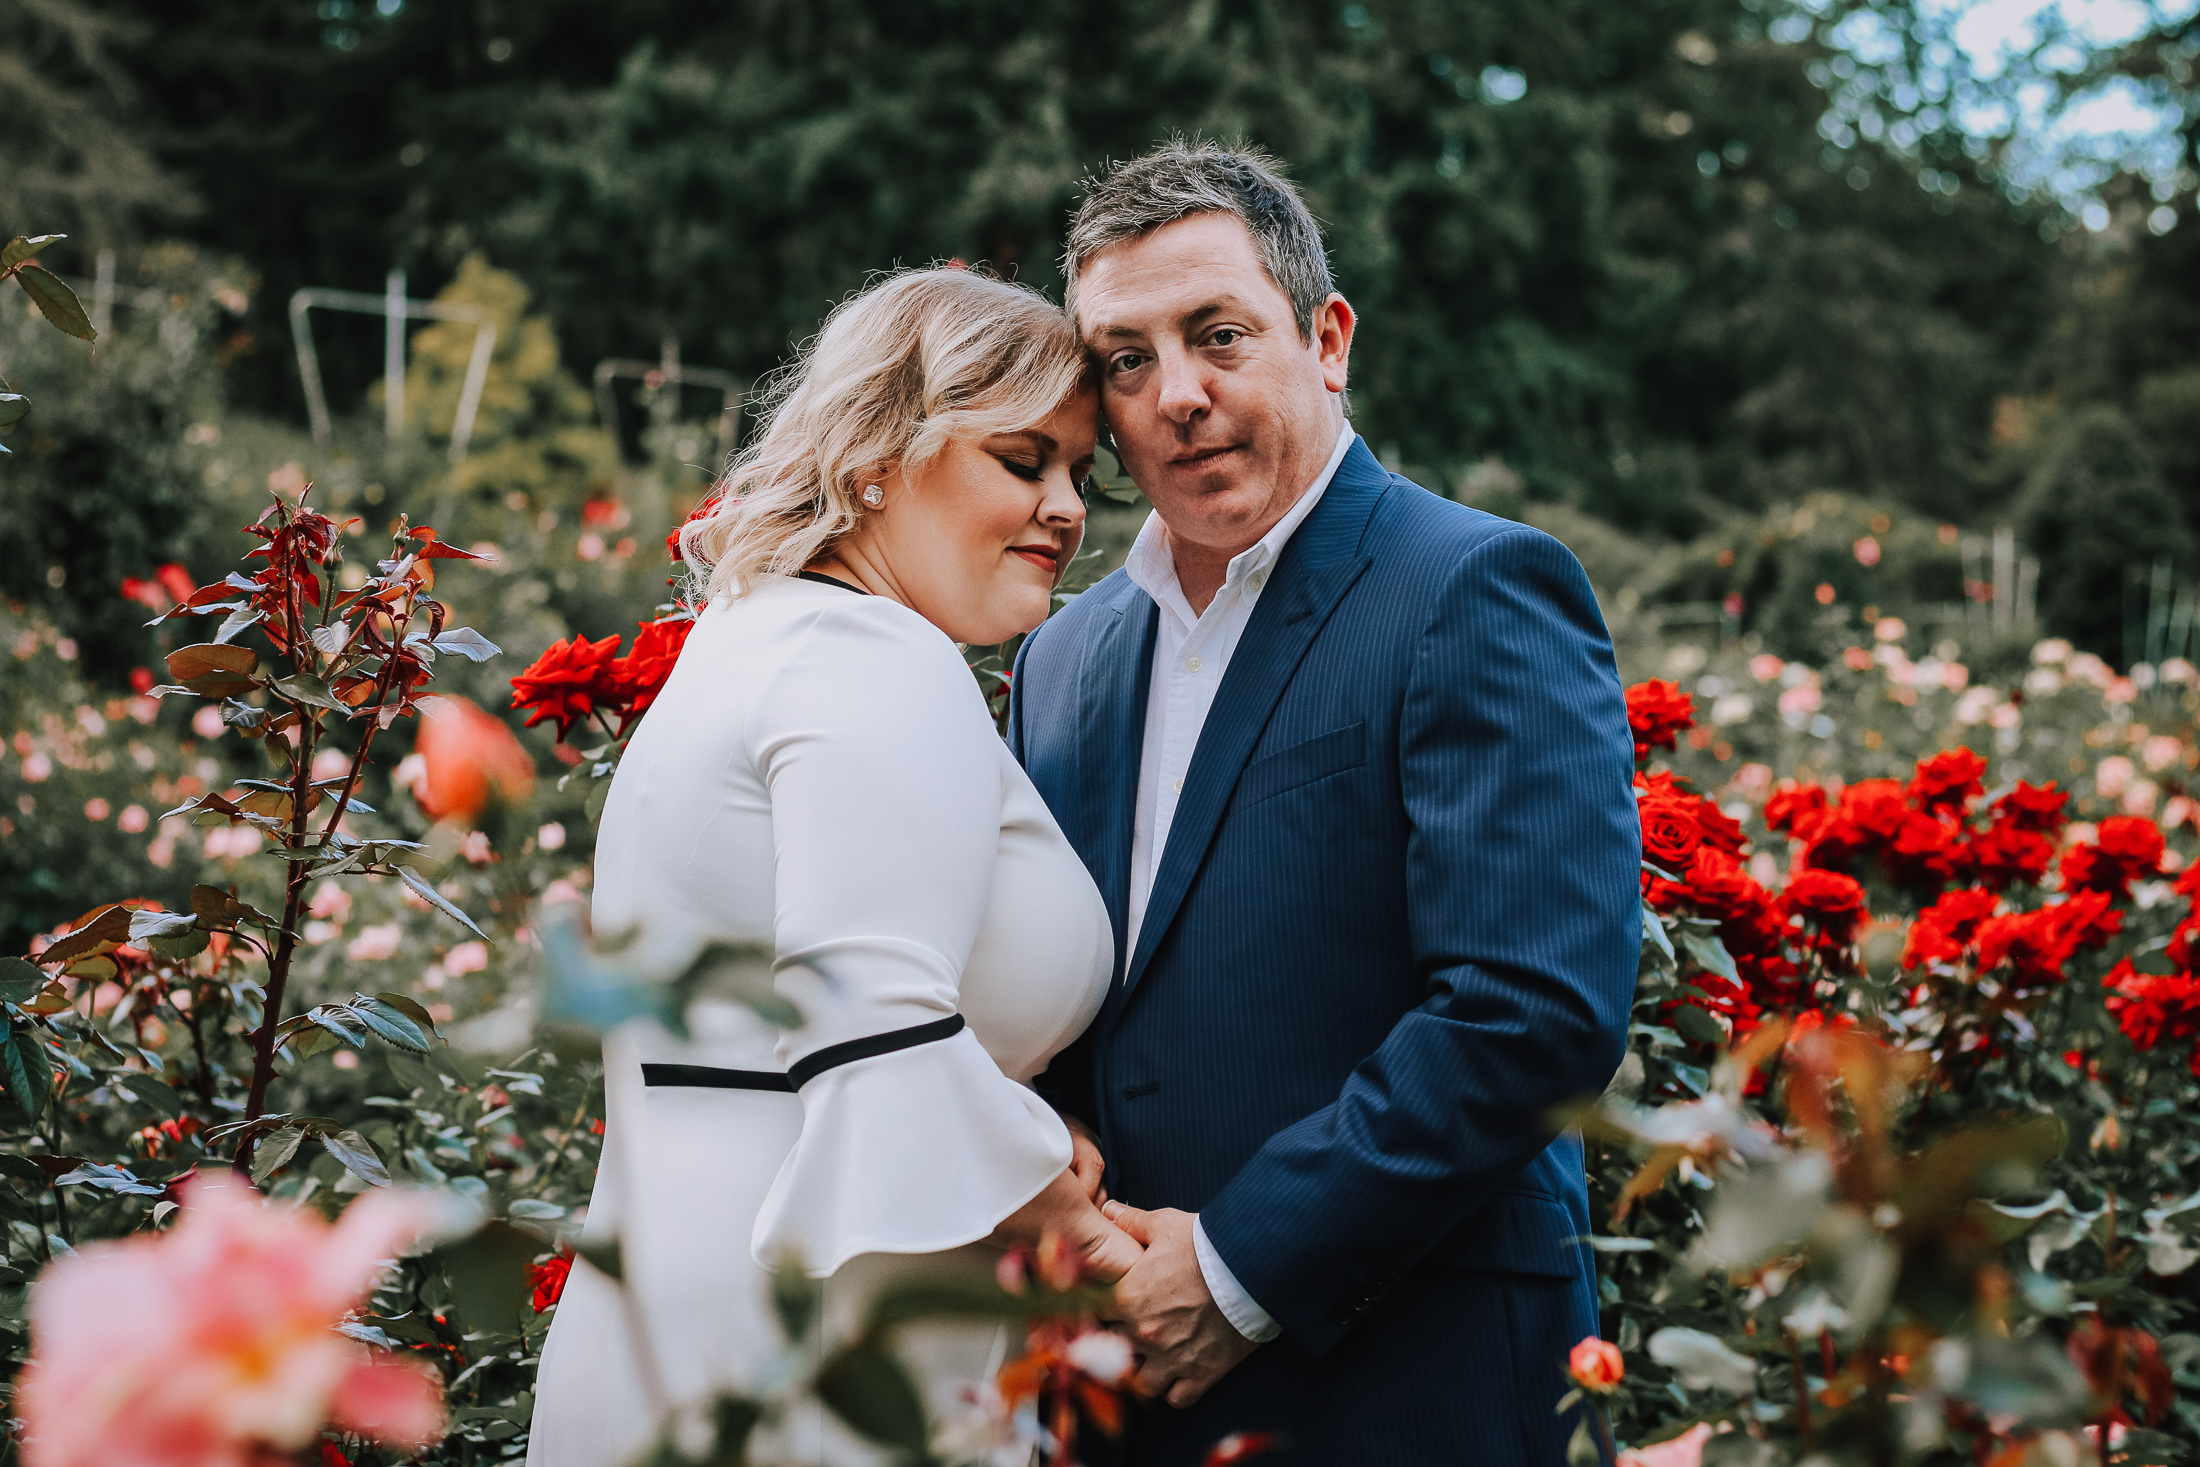 Stacy + Colby - A Portland Rose Garden Engagement